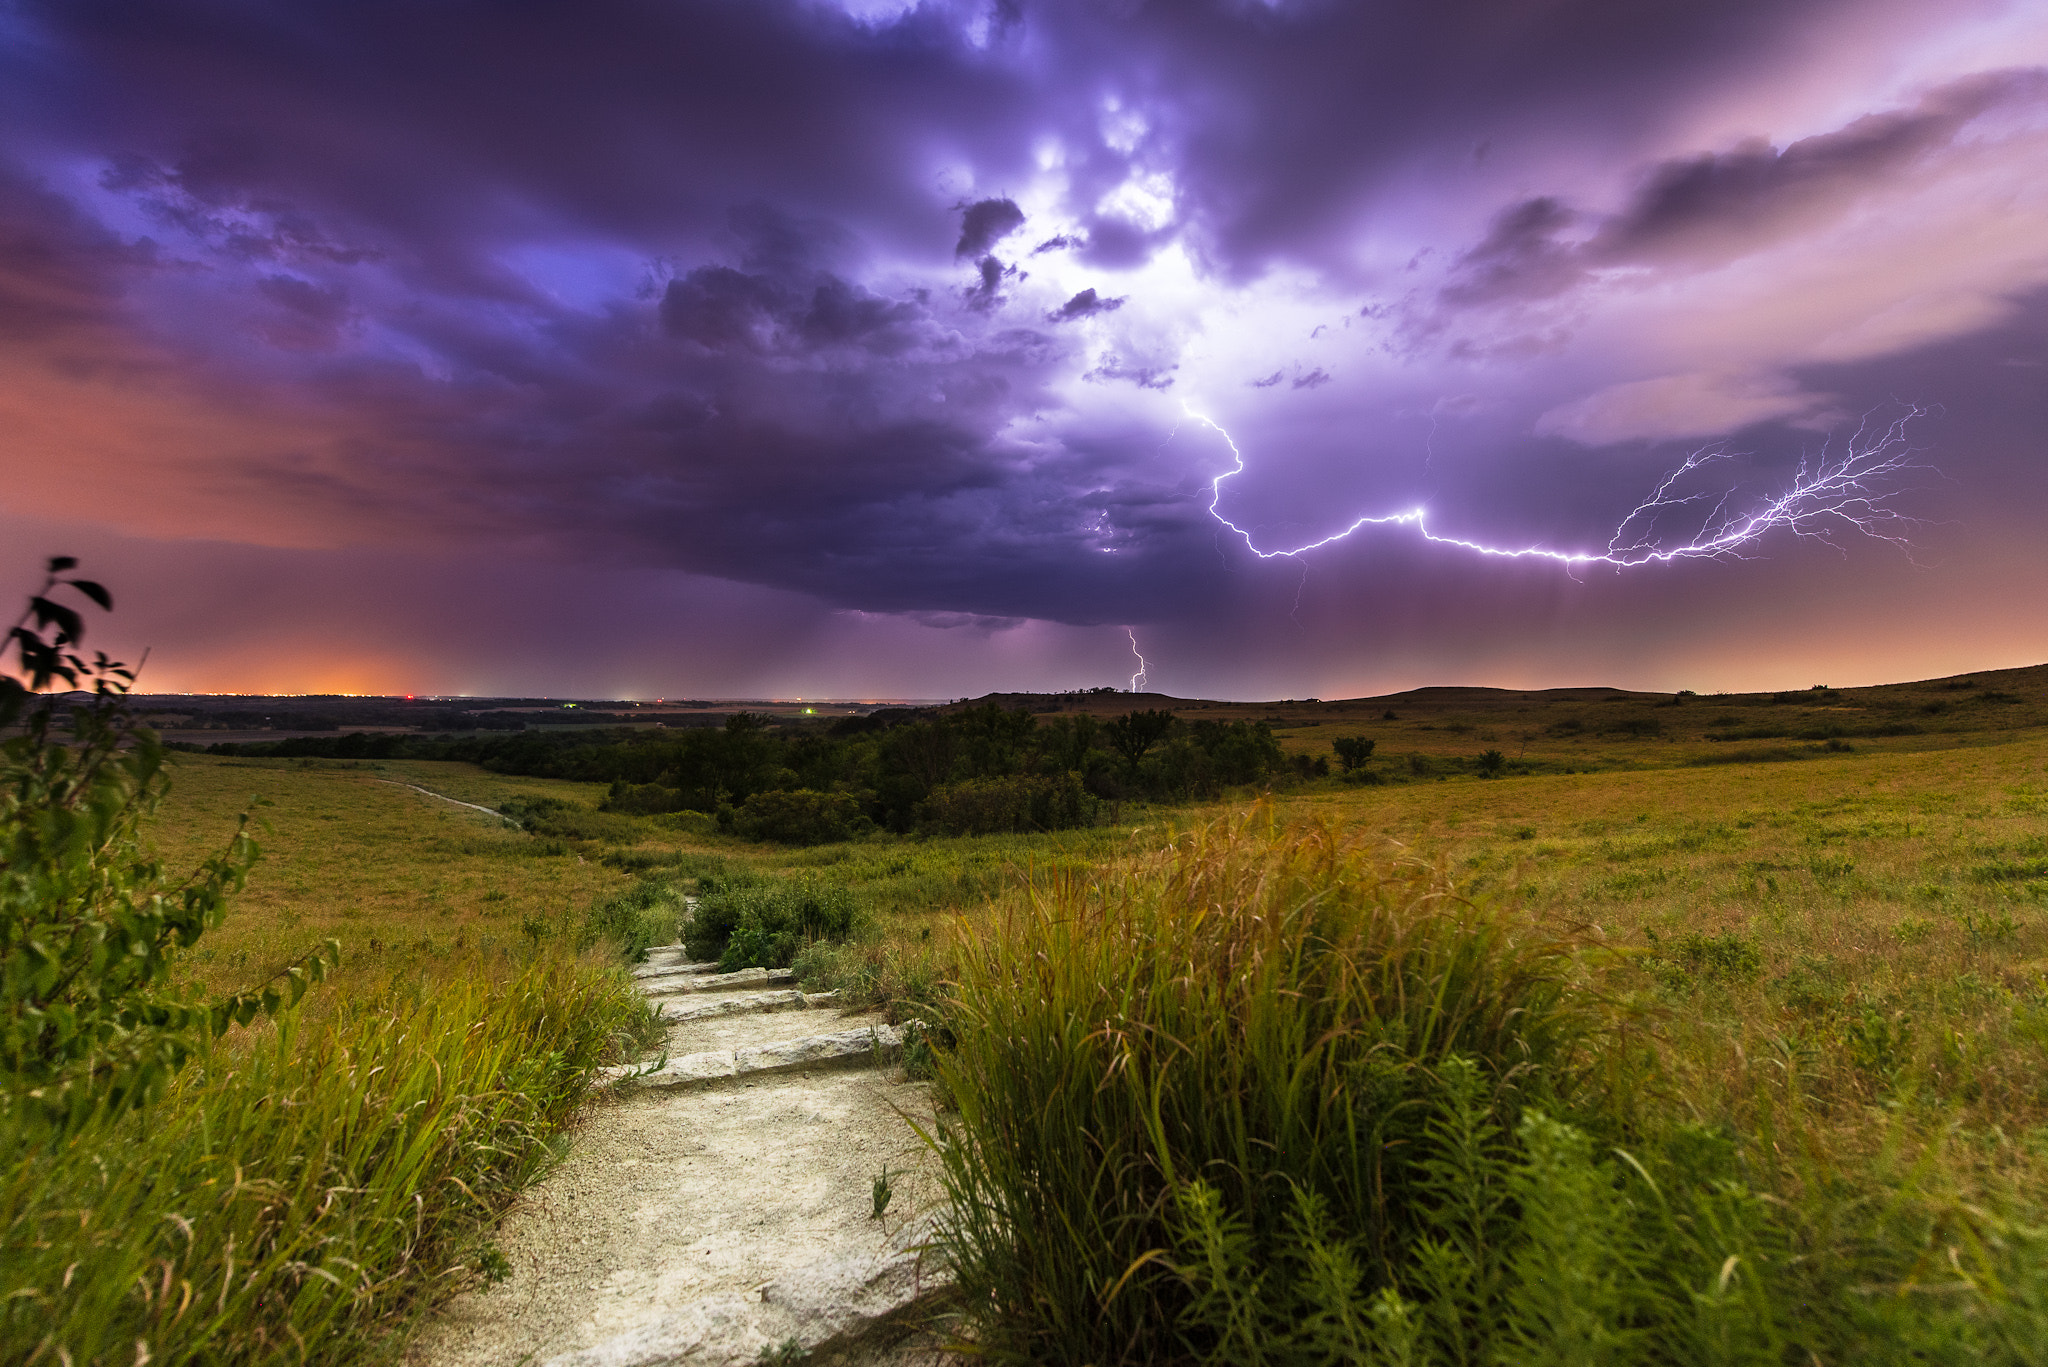 Photograph Thunder on the Konza by Joe Geske on 500px